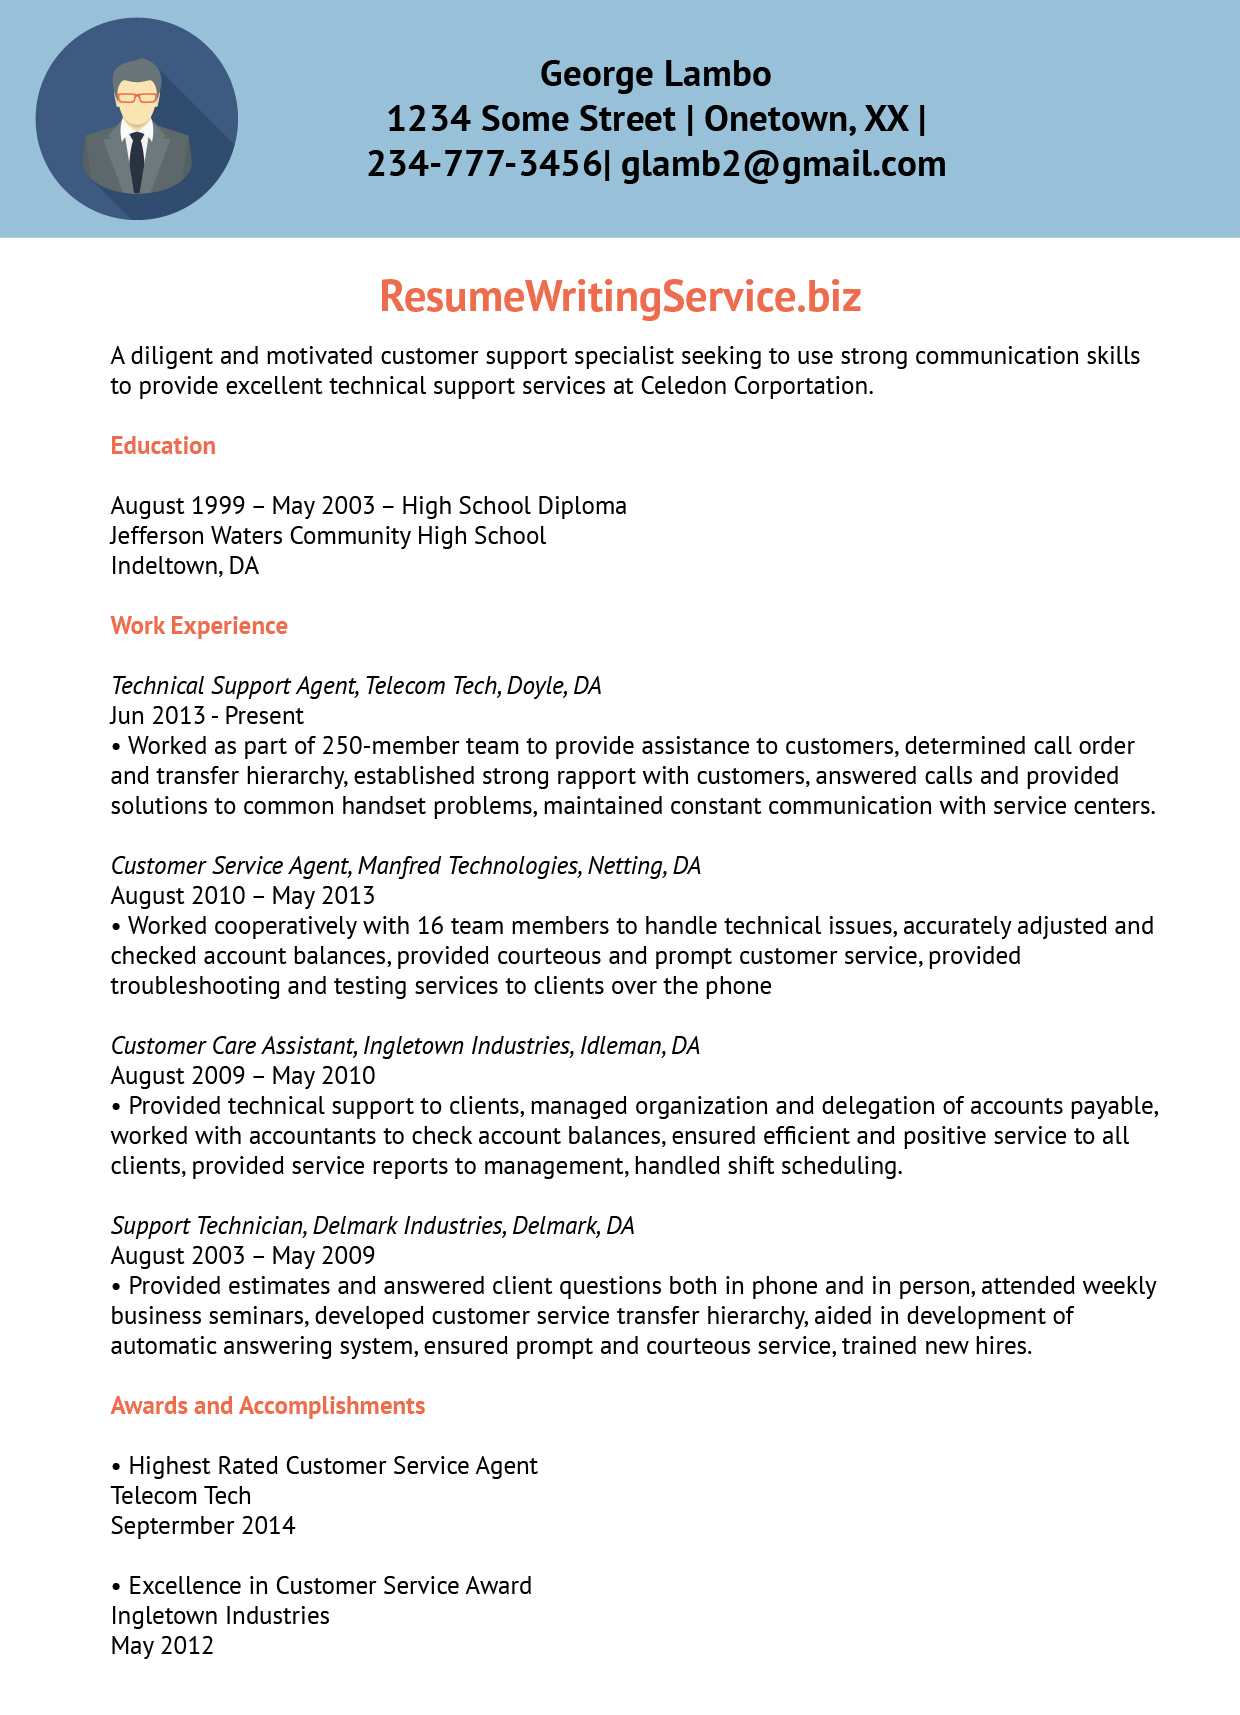 Technical Support Agent Resume Sample